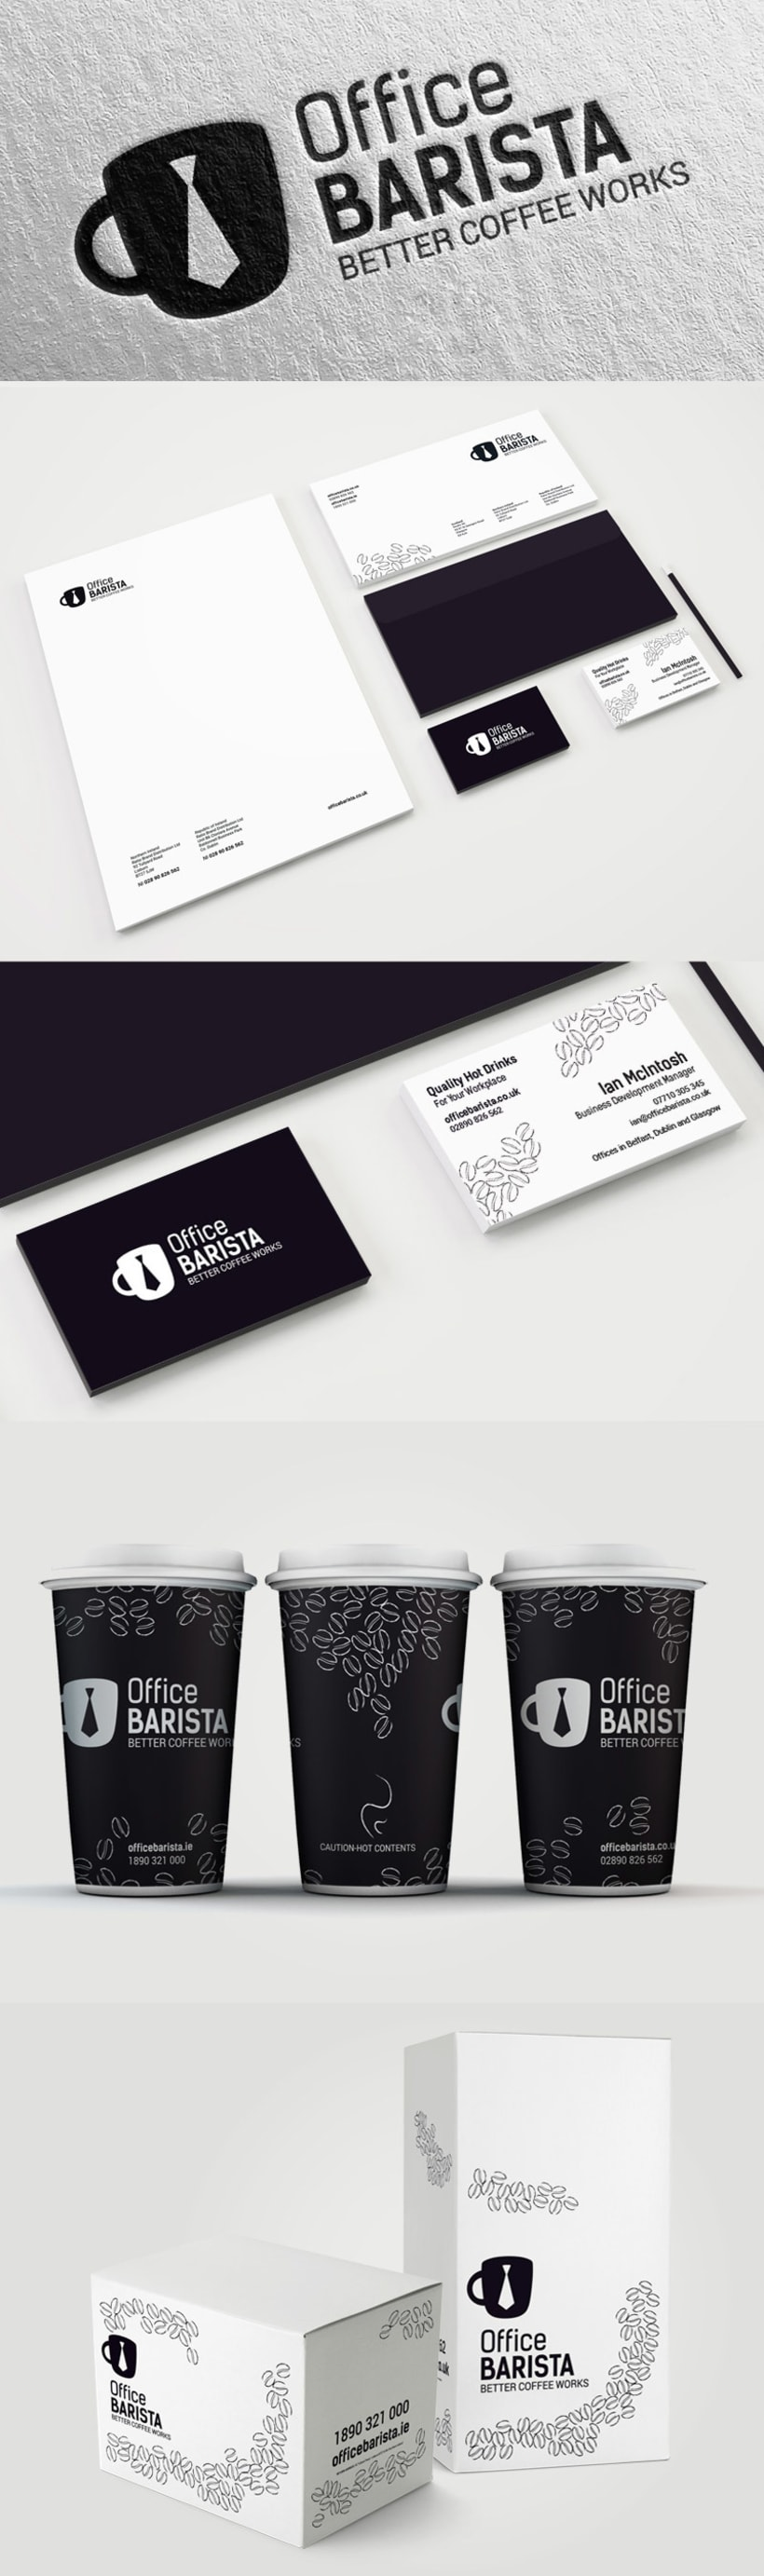 Office Barista. Branding and packaging design 0